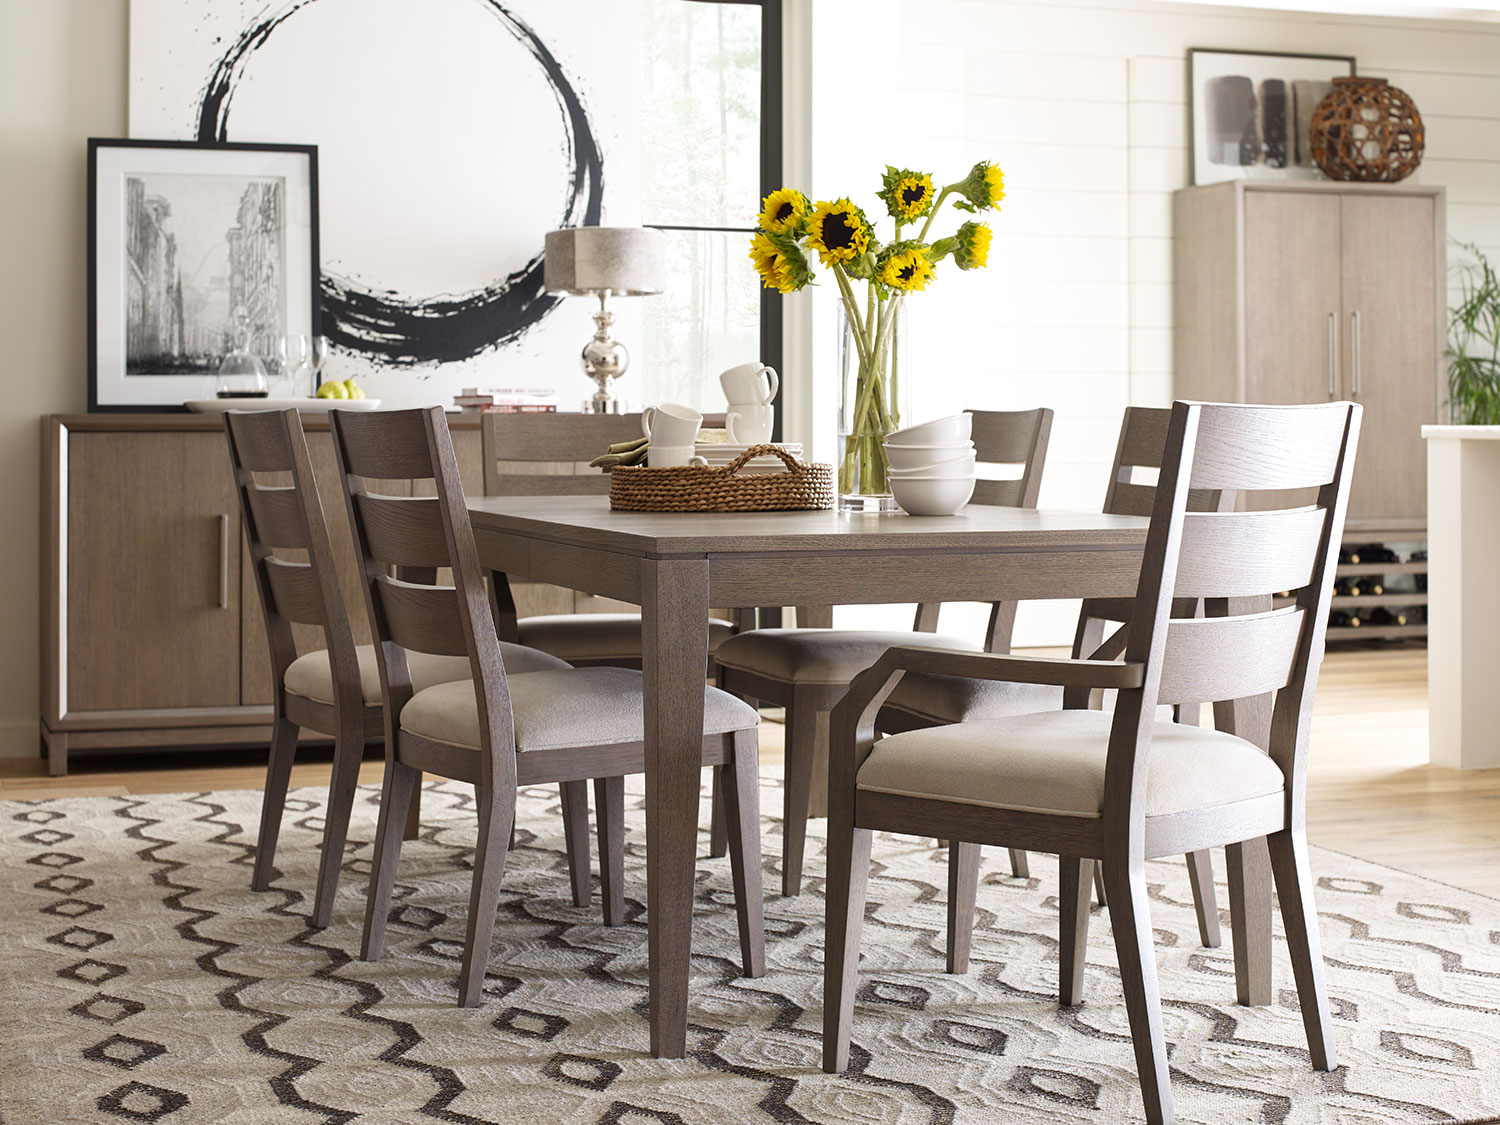 The Rachael Ray Highline Dining Room Collection